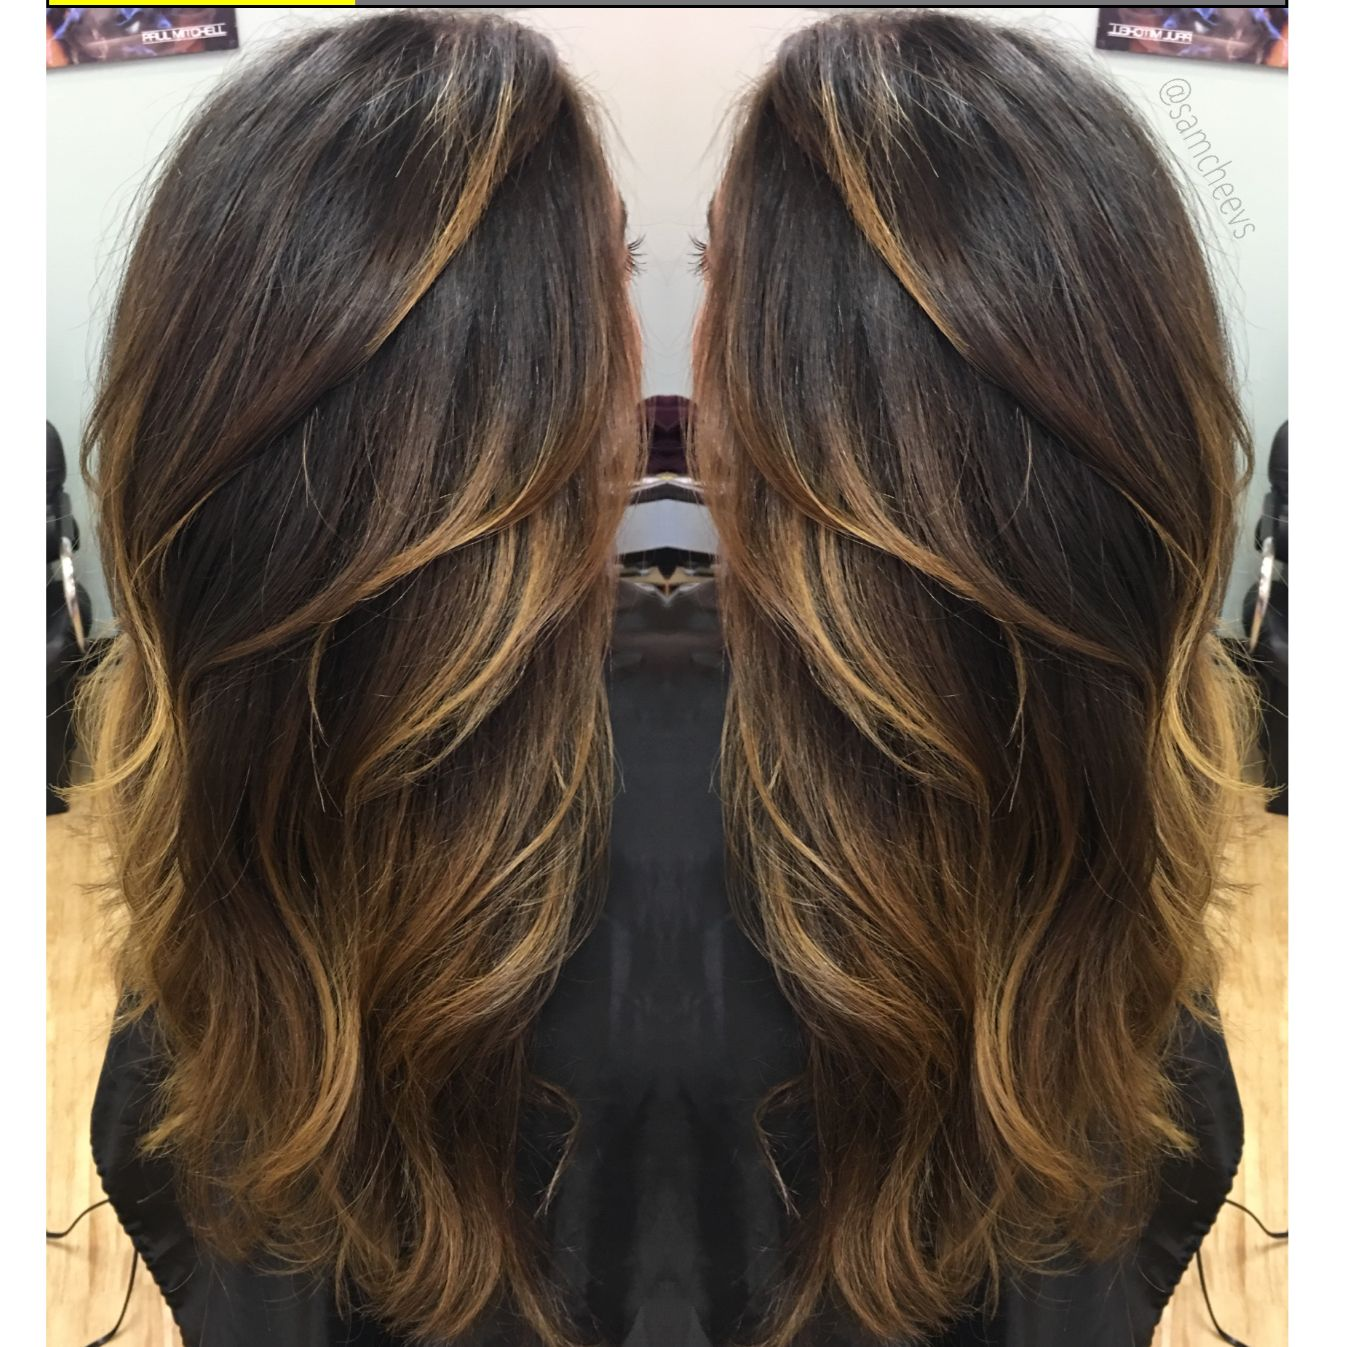 blonde highlights for dark hair types balayage ombr for black hair perfect blend hair. Black Bedroom Furniture Sets. Home Design Ideas